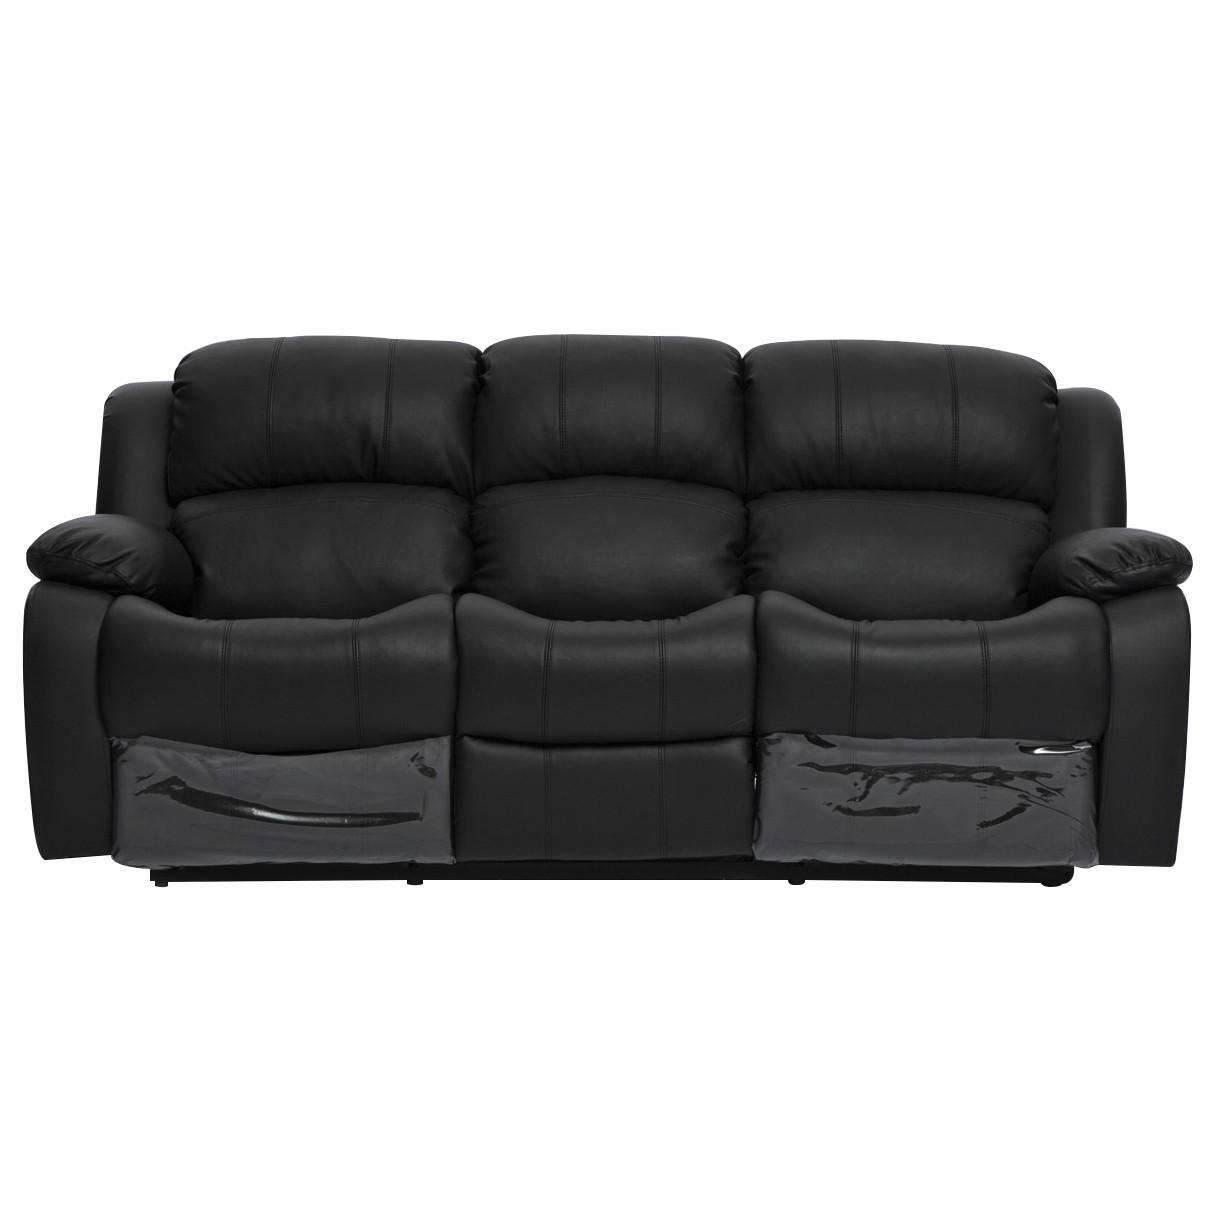 Kacey 3 Seater Chair Recliner Couch Lounge Suite Sofa